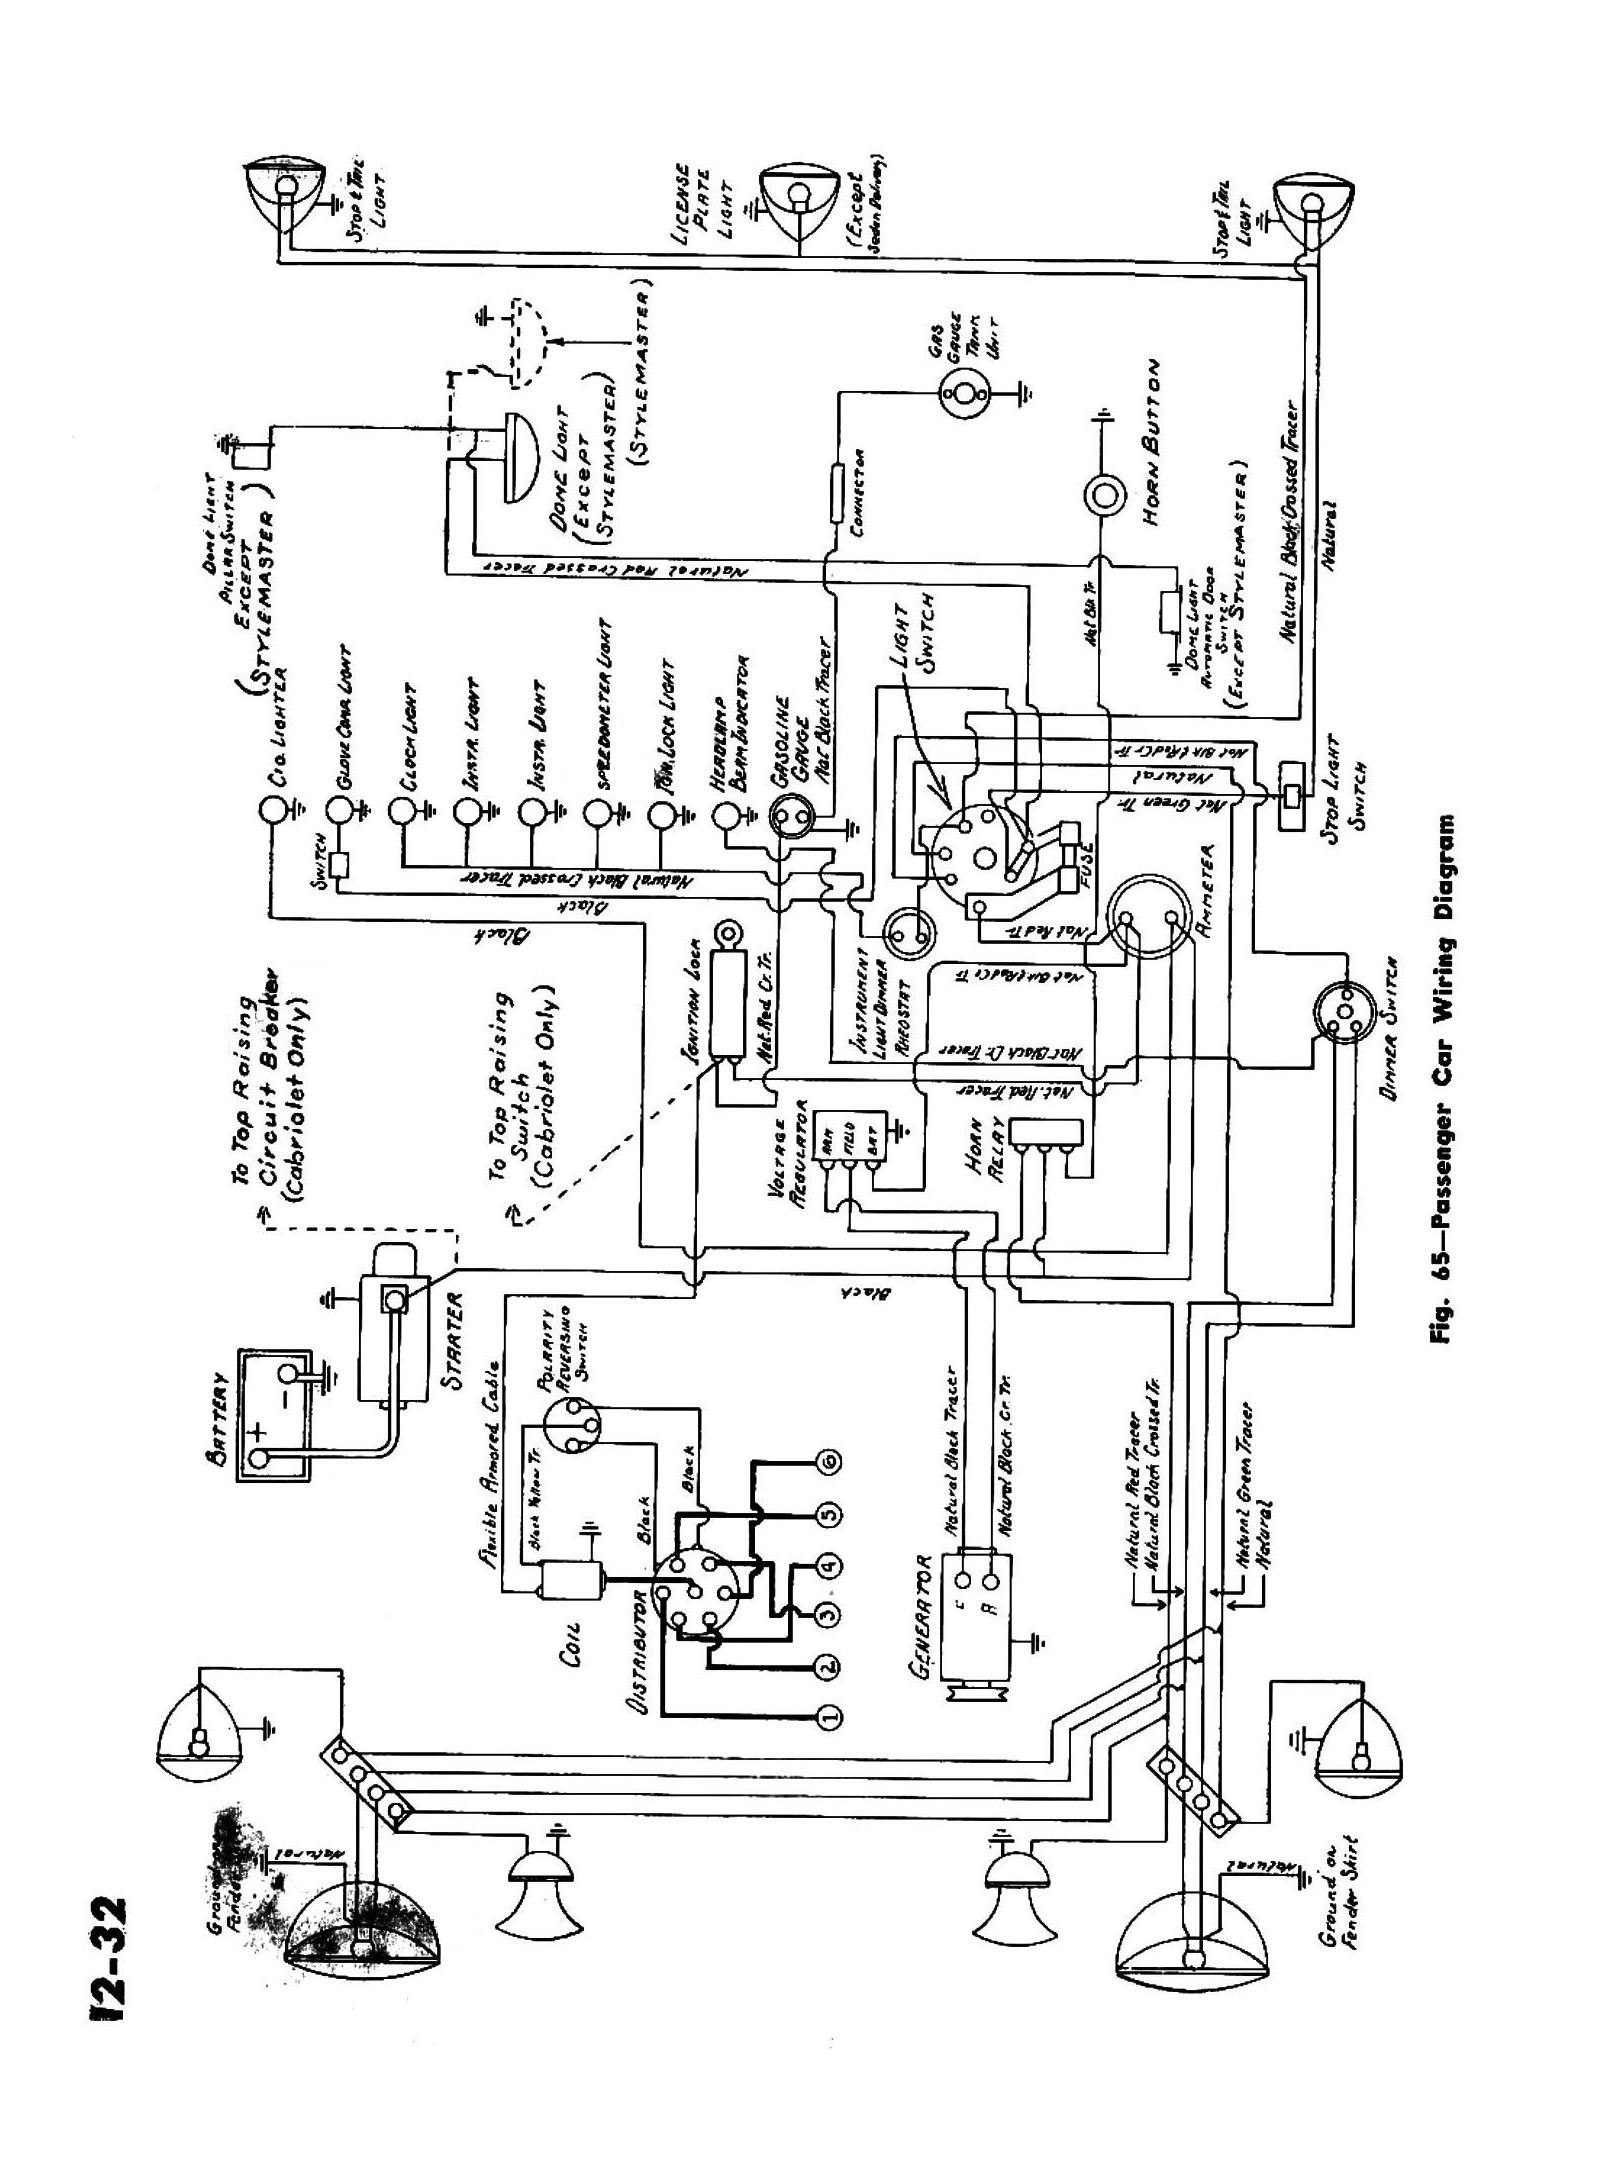 latest auto electrical wiring diagram manual jpg hd wallpaper free rh blueprintdiagram blogspot com Simple Car Wiring Diagram Auto Wiring Diagram Library